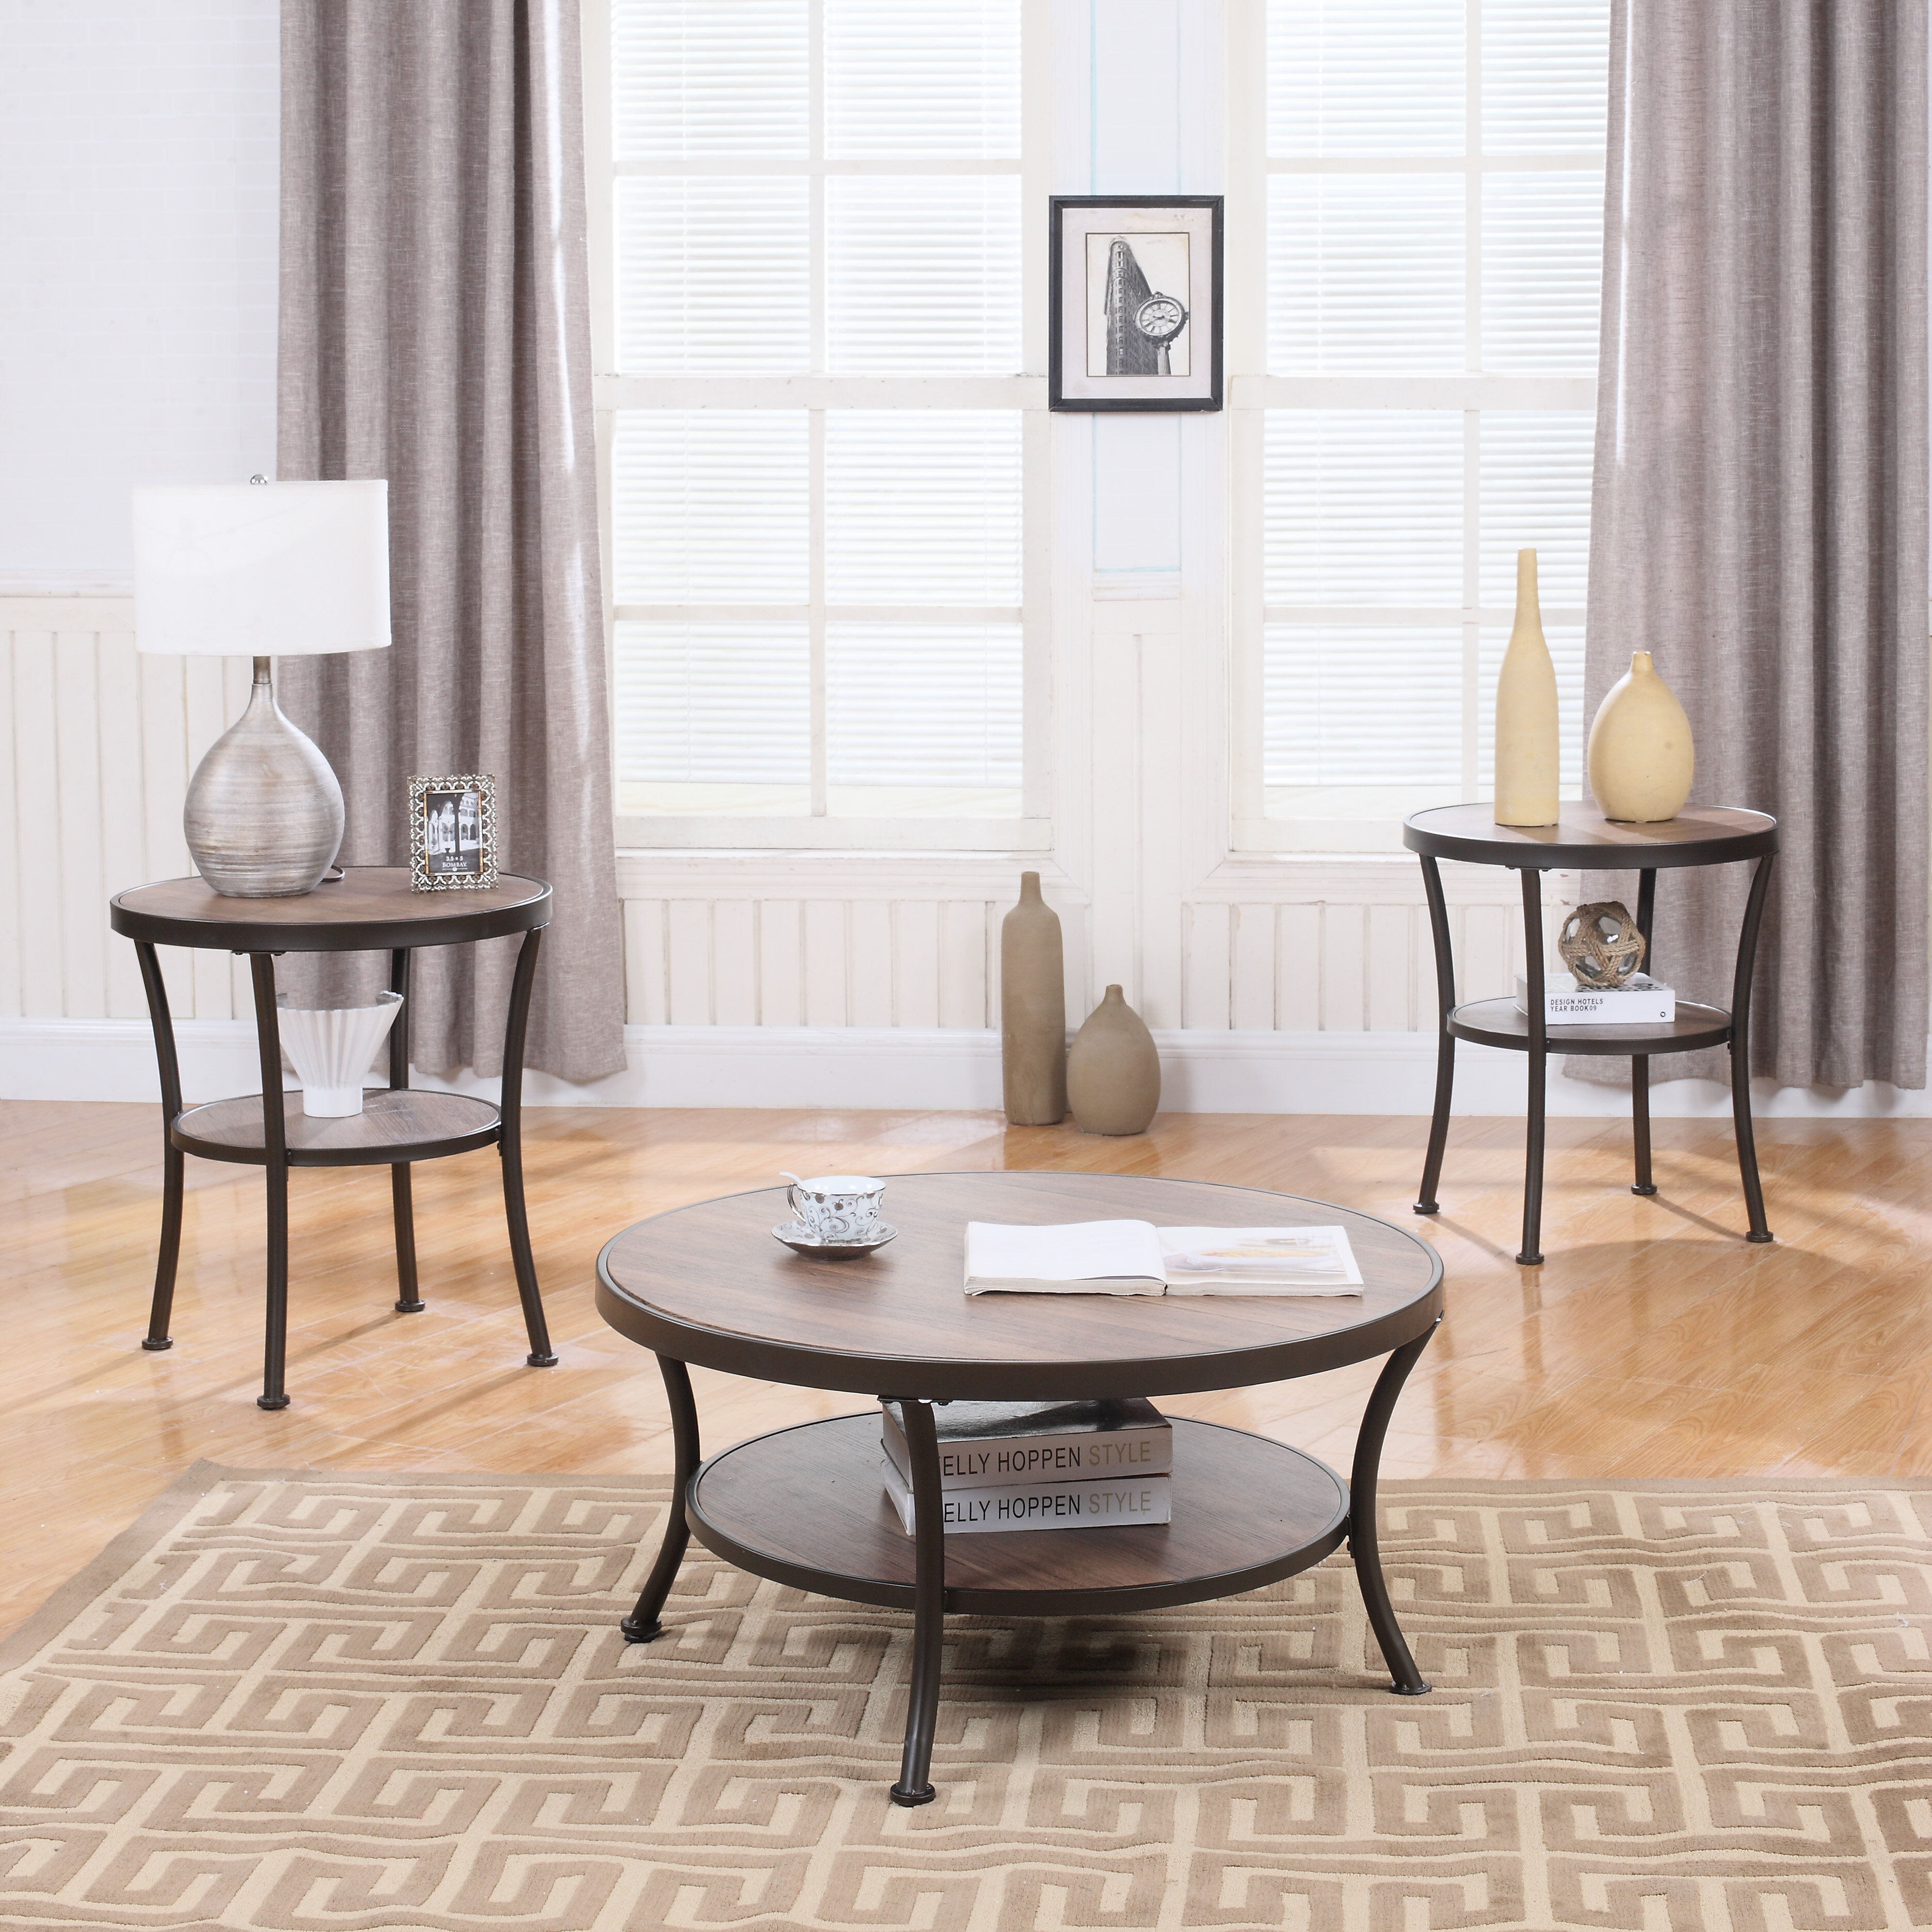 Madison Home USA 3 Piece Coffee Table and End Table Set u0026 Reviews | Wayfair & Madison Home USA 3 Piece Coffee Table and End Table Set u0026 Reviews ...